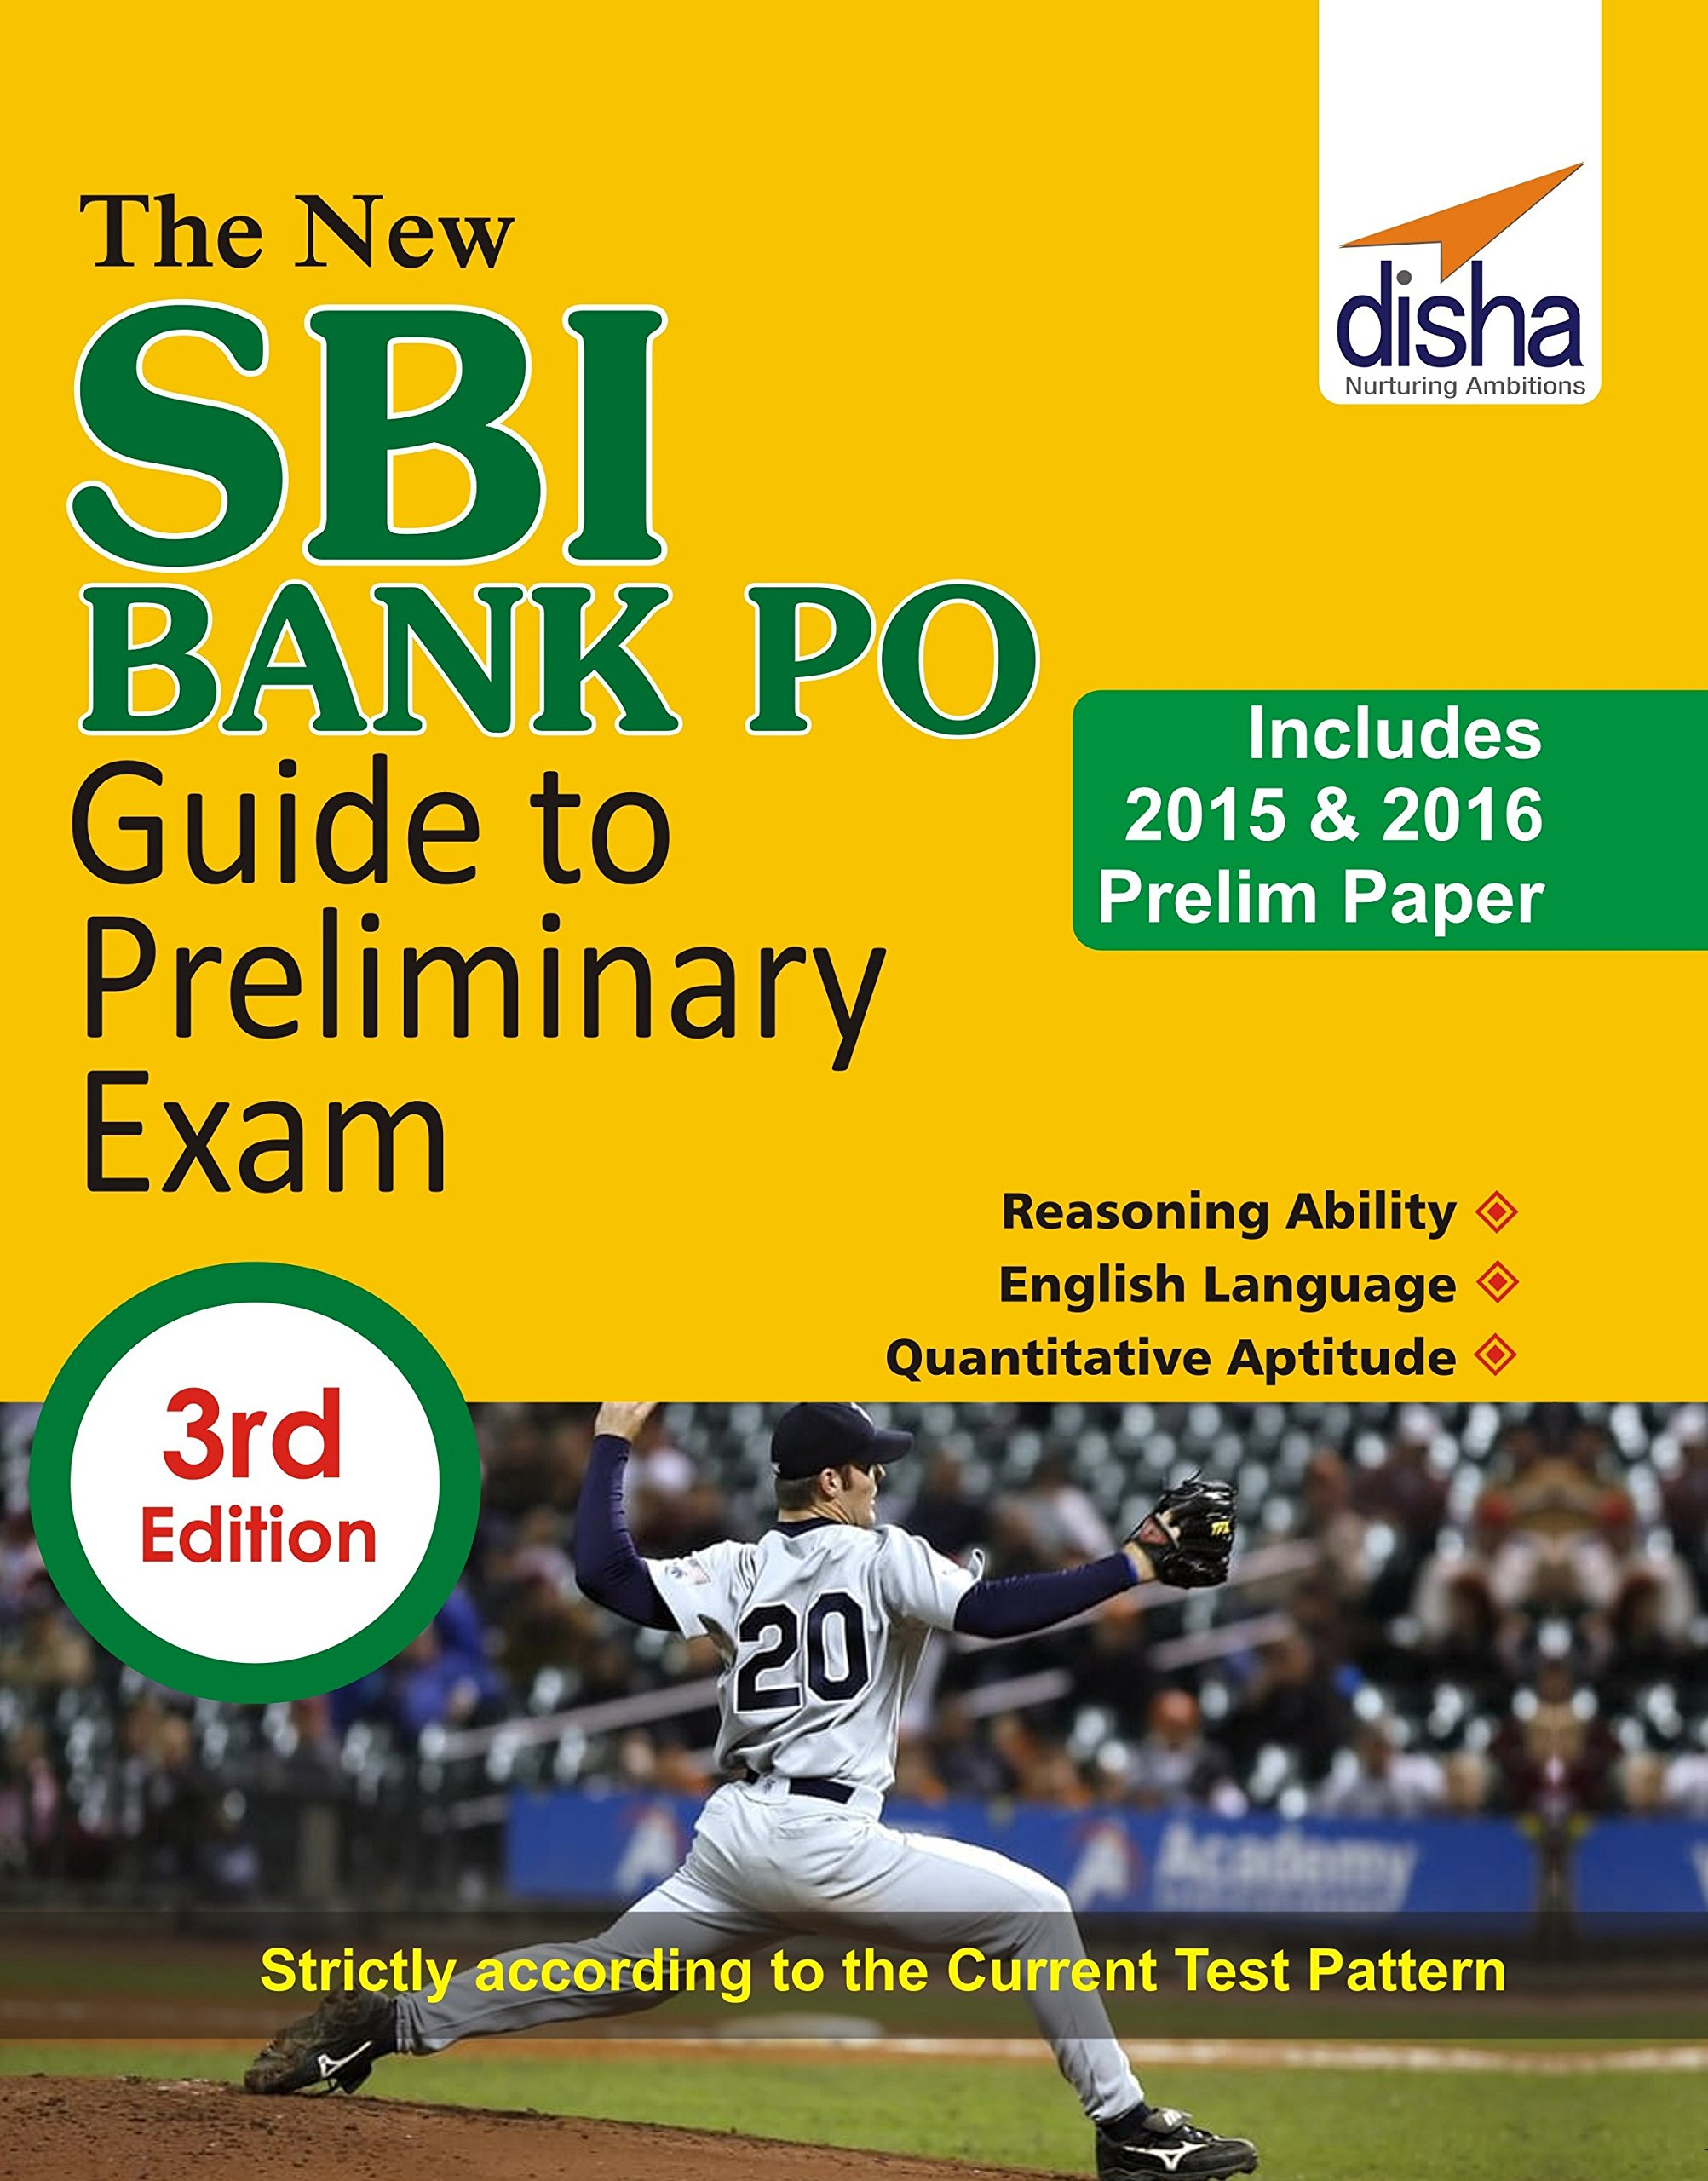 The New SBI Bank PO Guide to Preliminary Exam with 2015 & 2016 Solved Paper